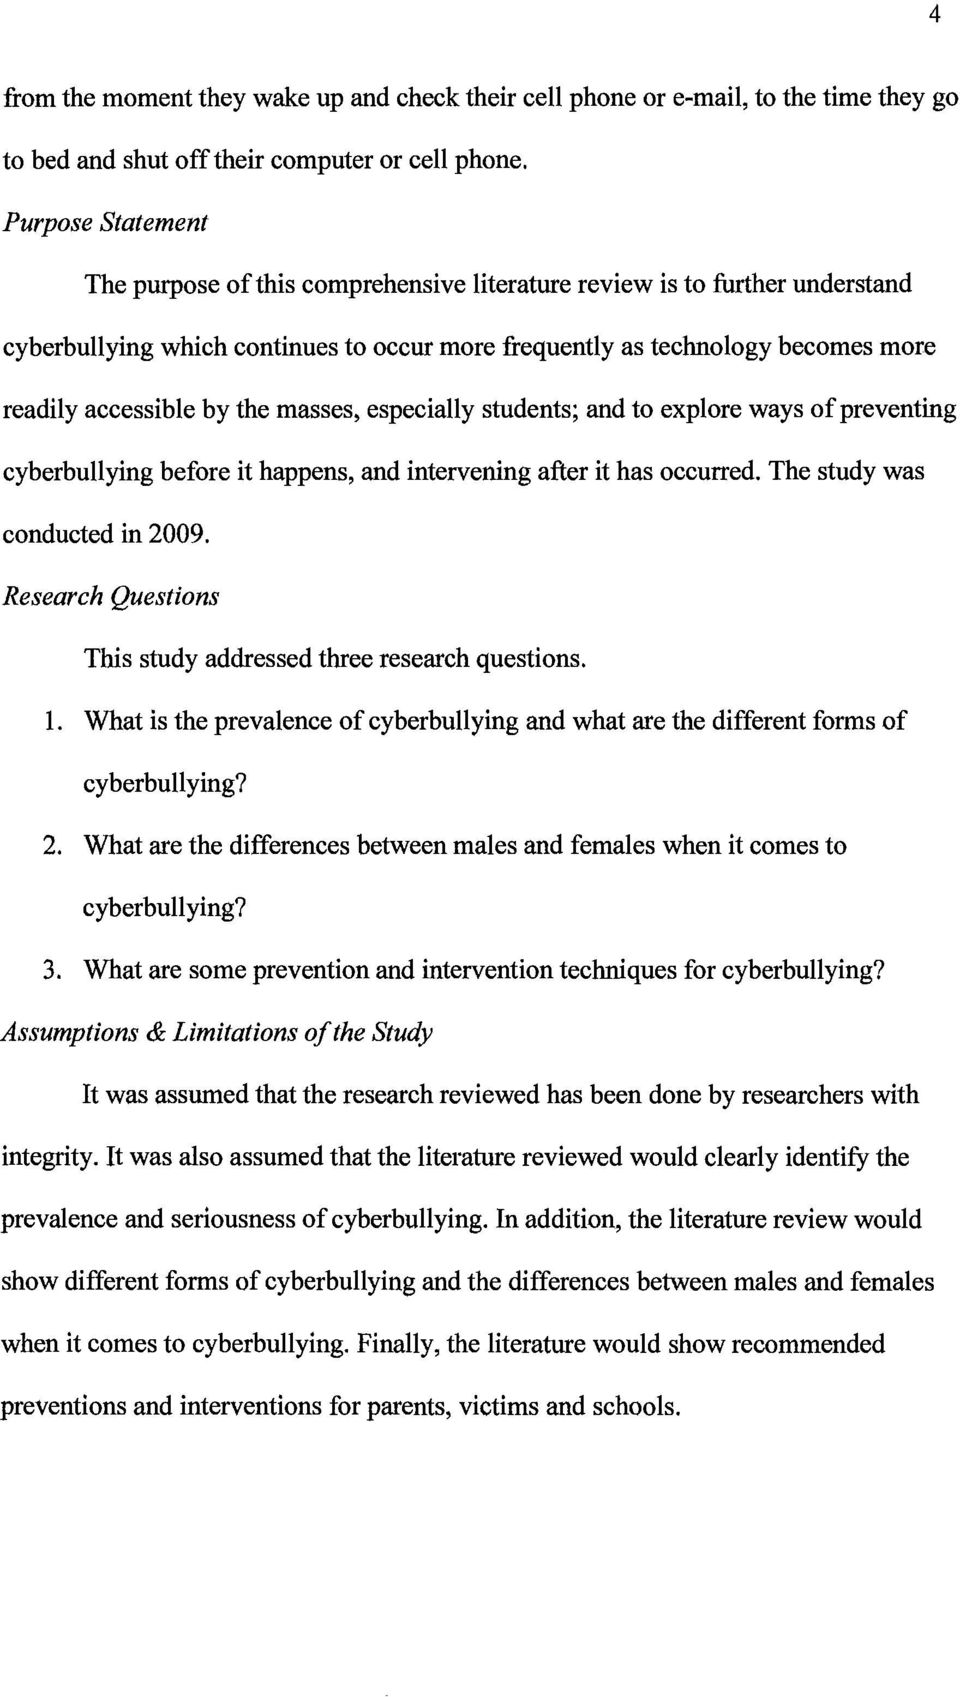 004 Cyberbullying Research Questions Paper Page 8 Awful Topic Full